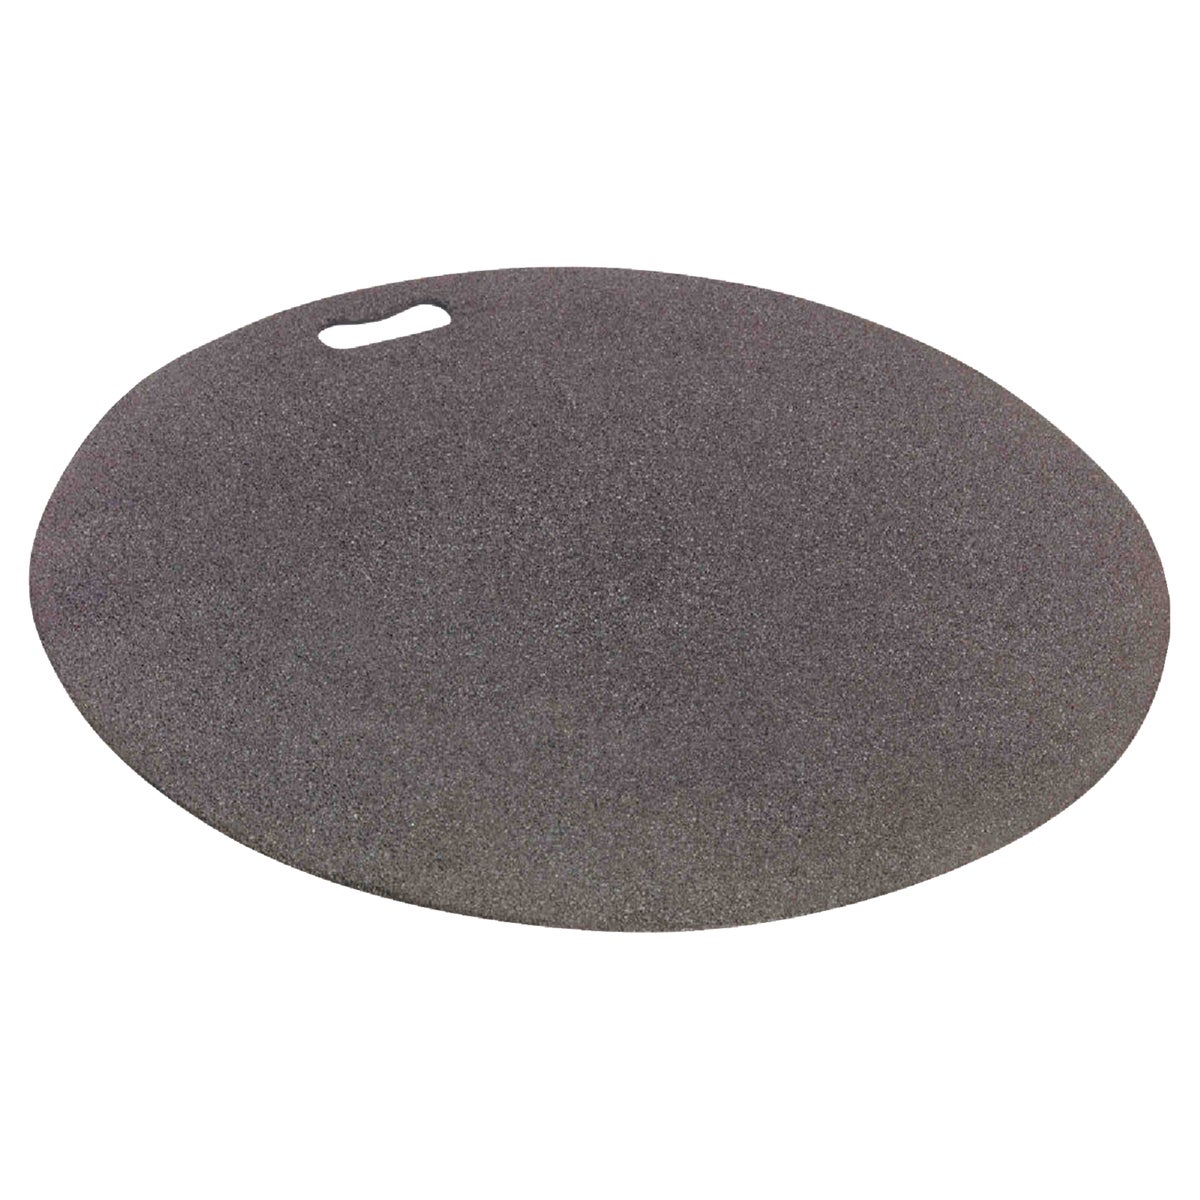 BROWN ROUND GRILL PAD